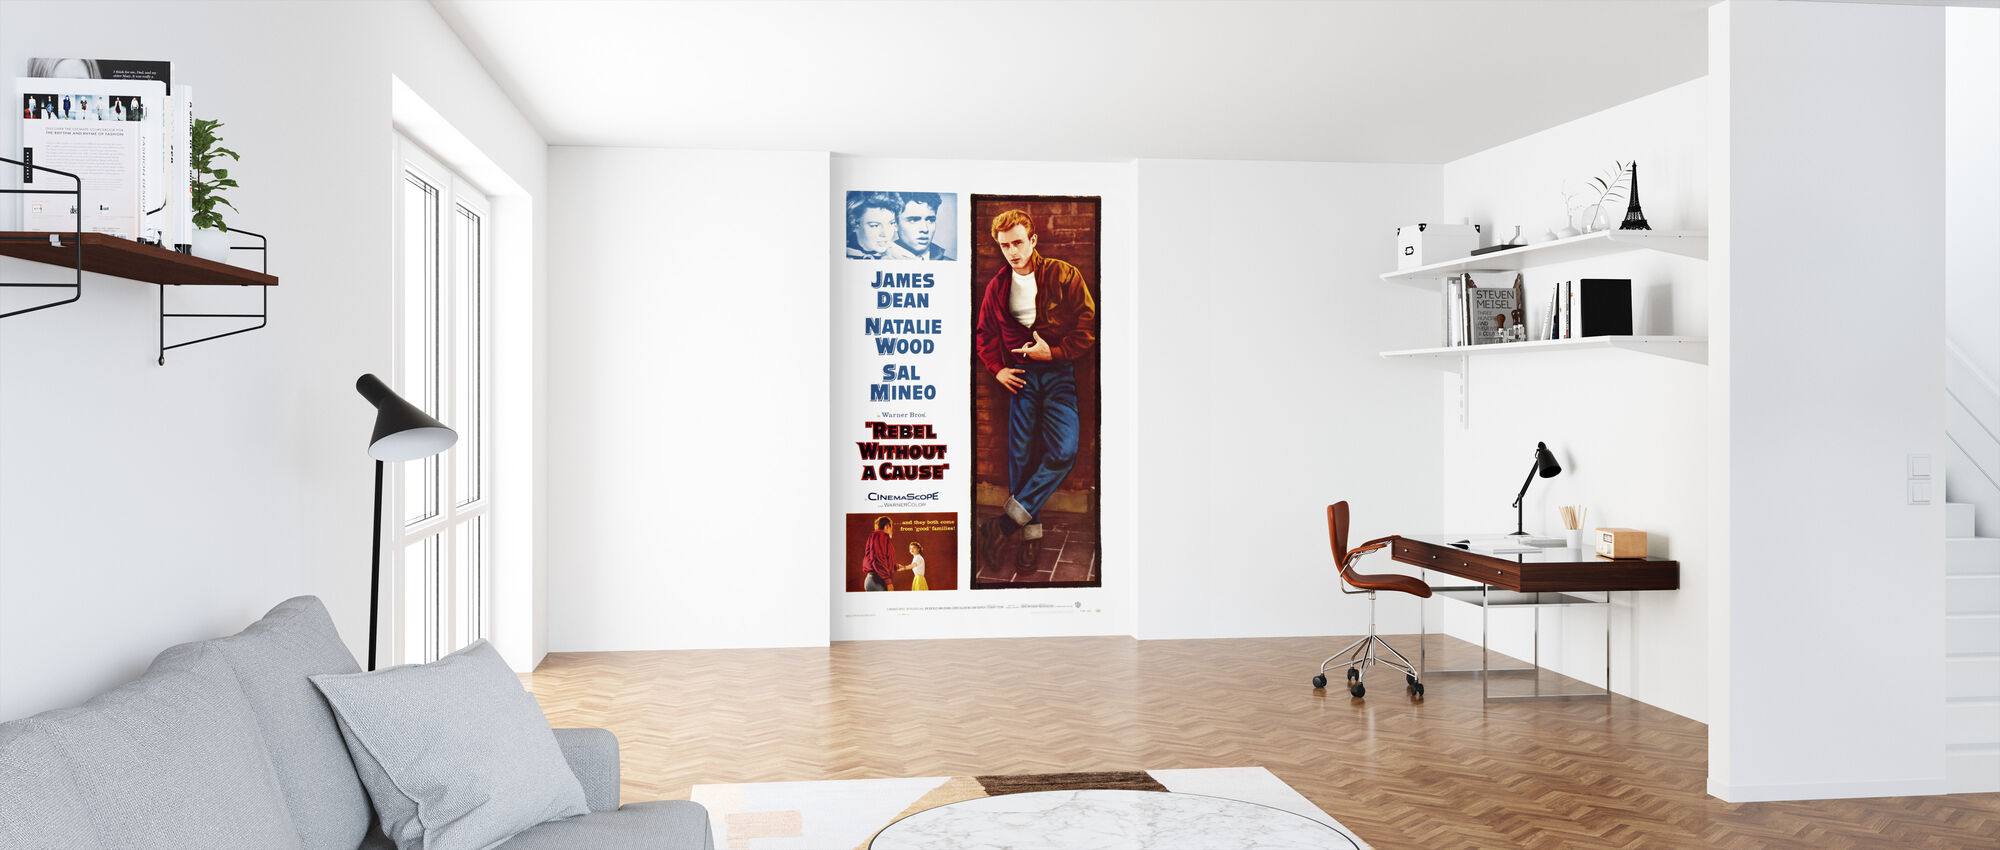 Movie Poster Rebel without a Cause - Wallpaper - Office